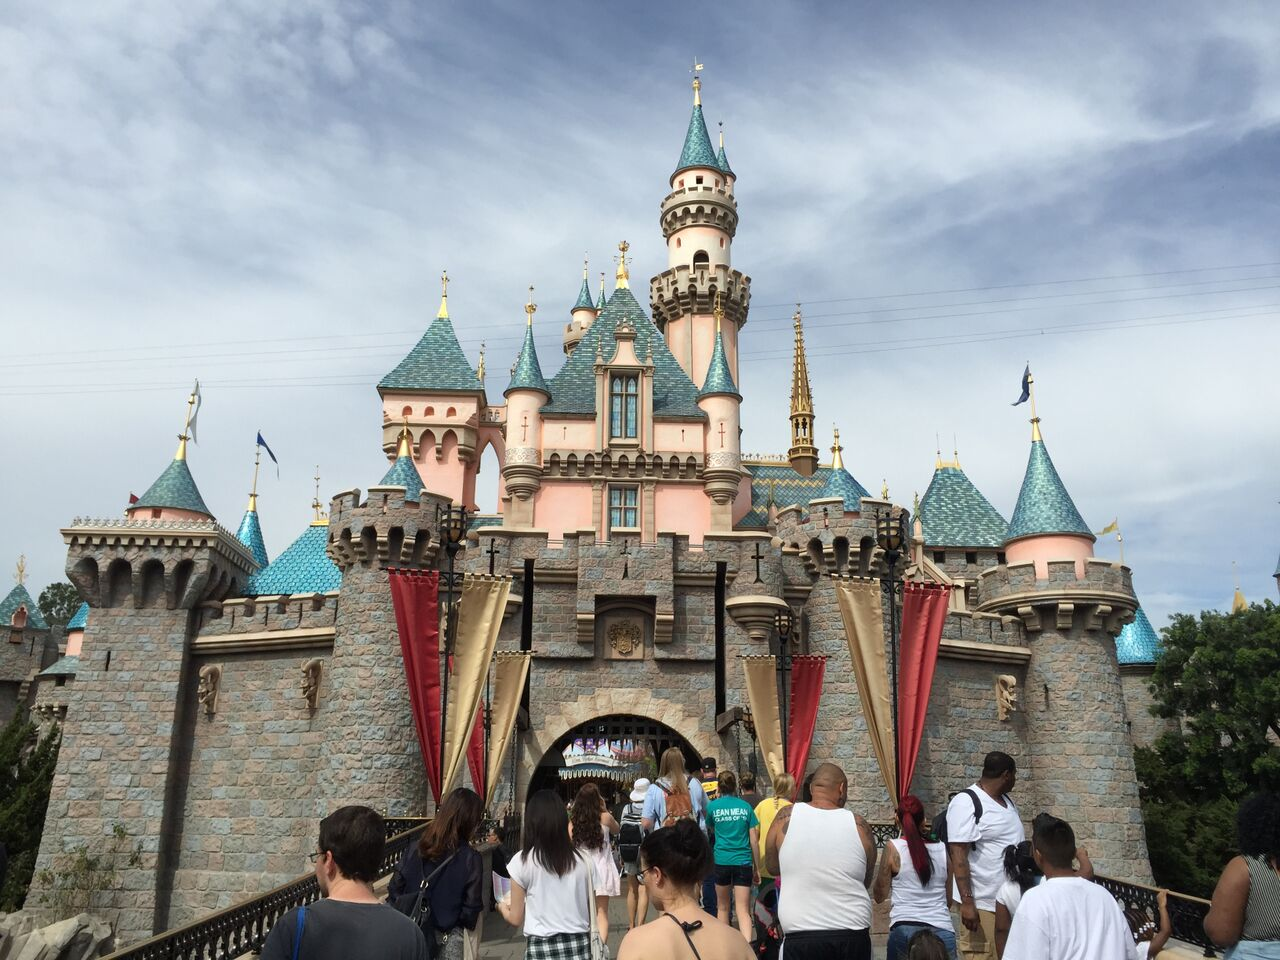 Are the Disney Parks Really the Happiest Place on Earth?